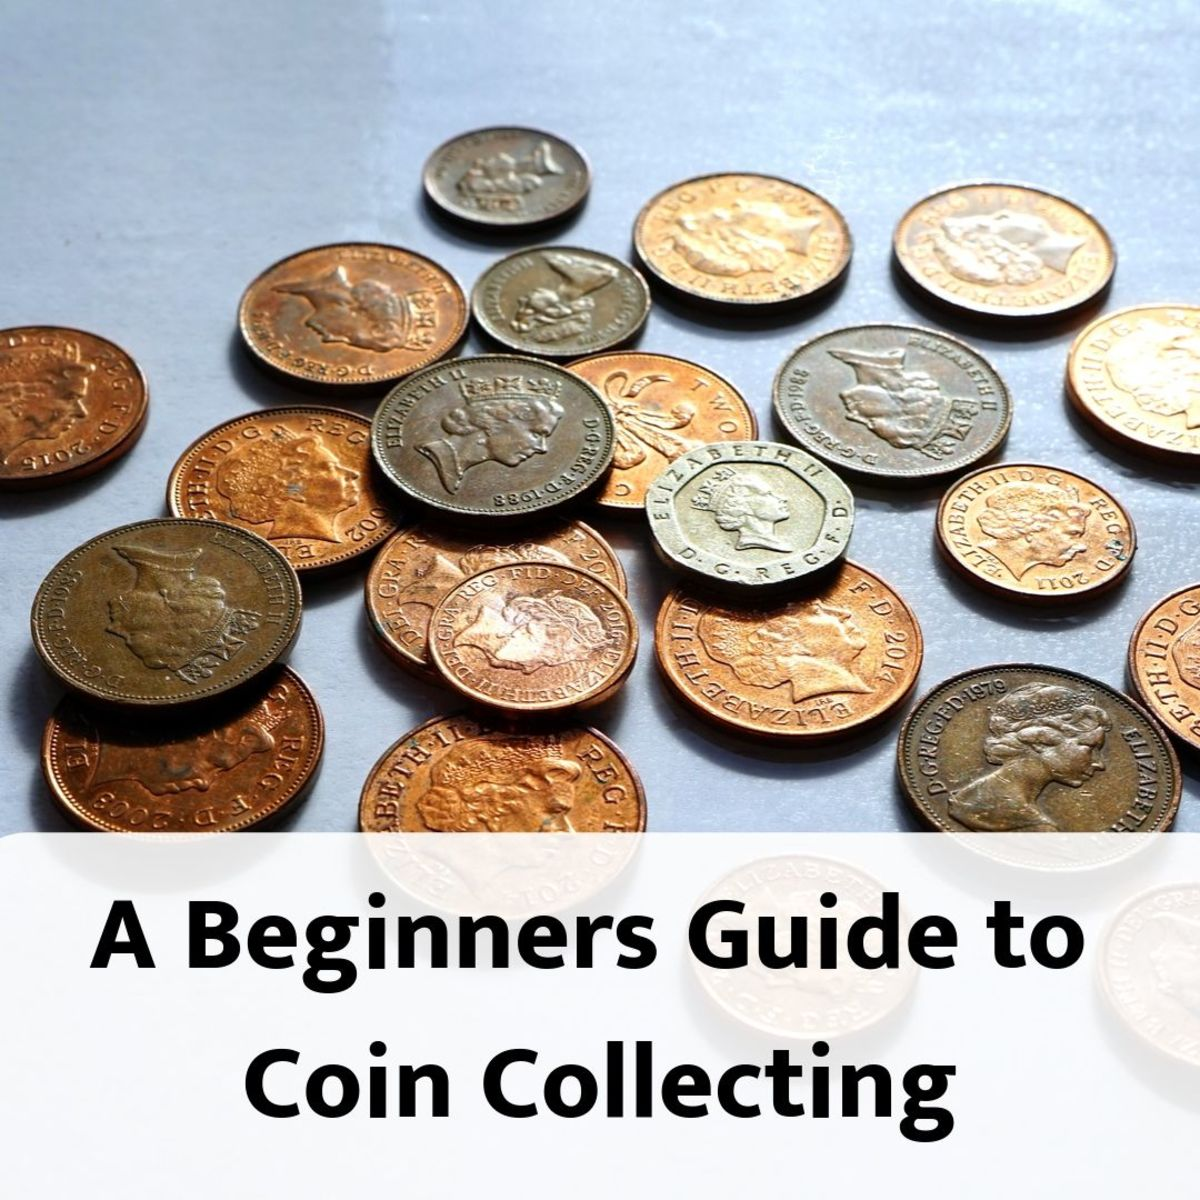 Tips on the Value of Collecting Old Coins